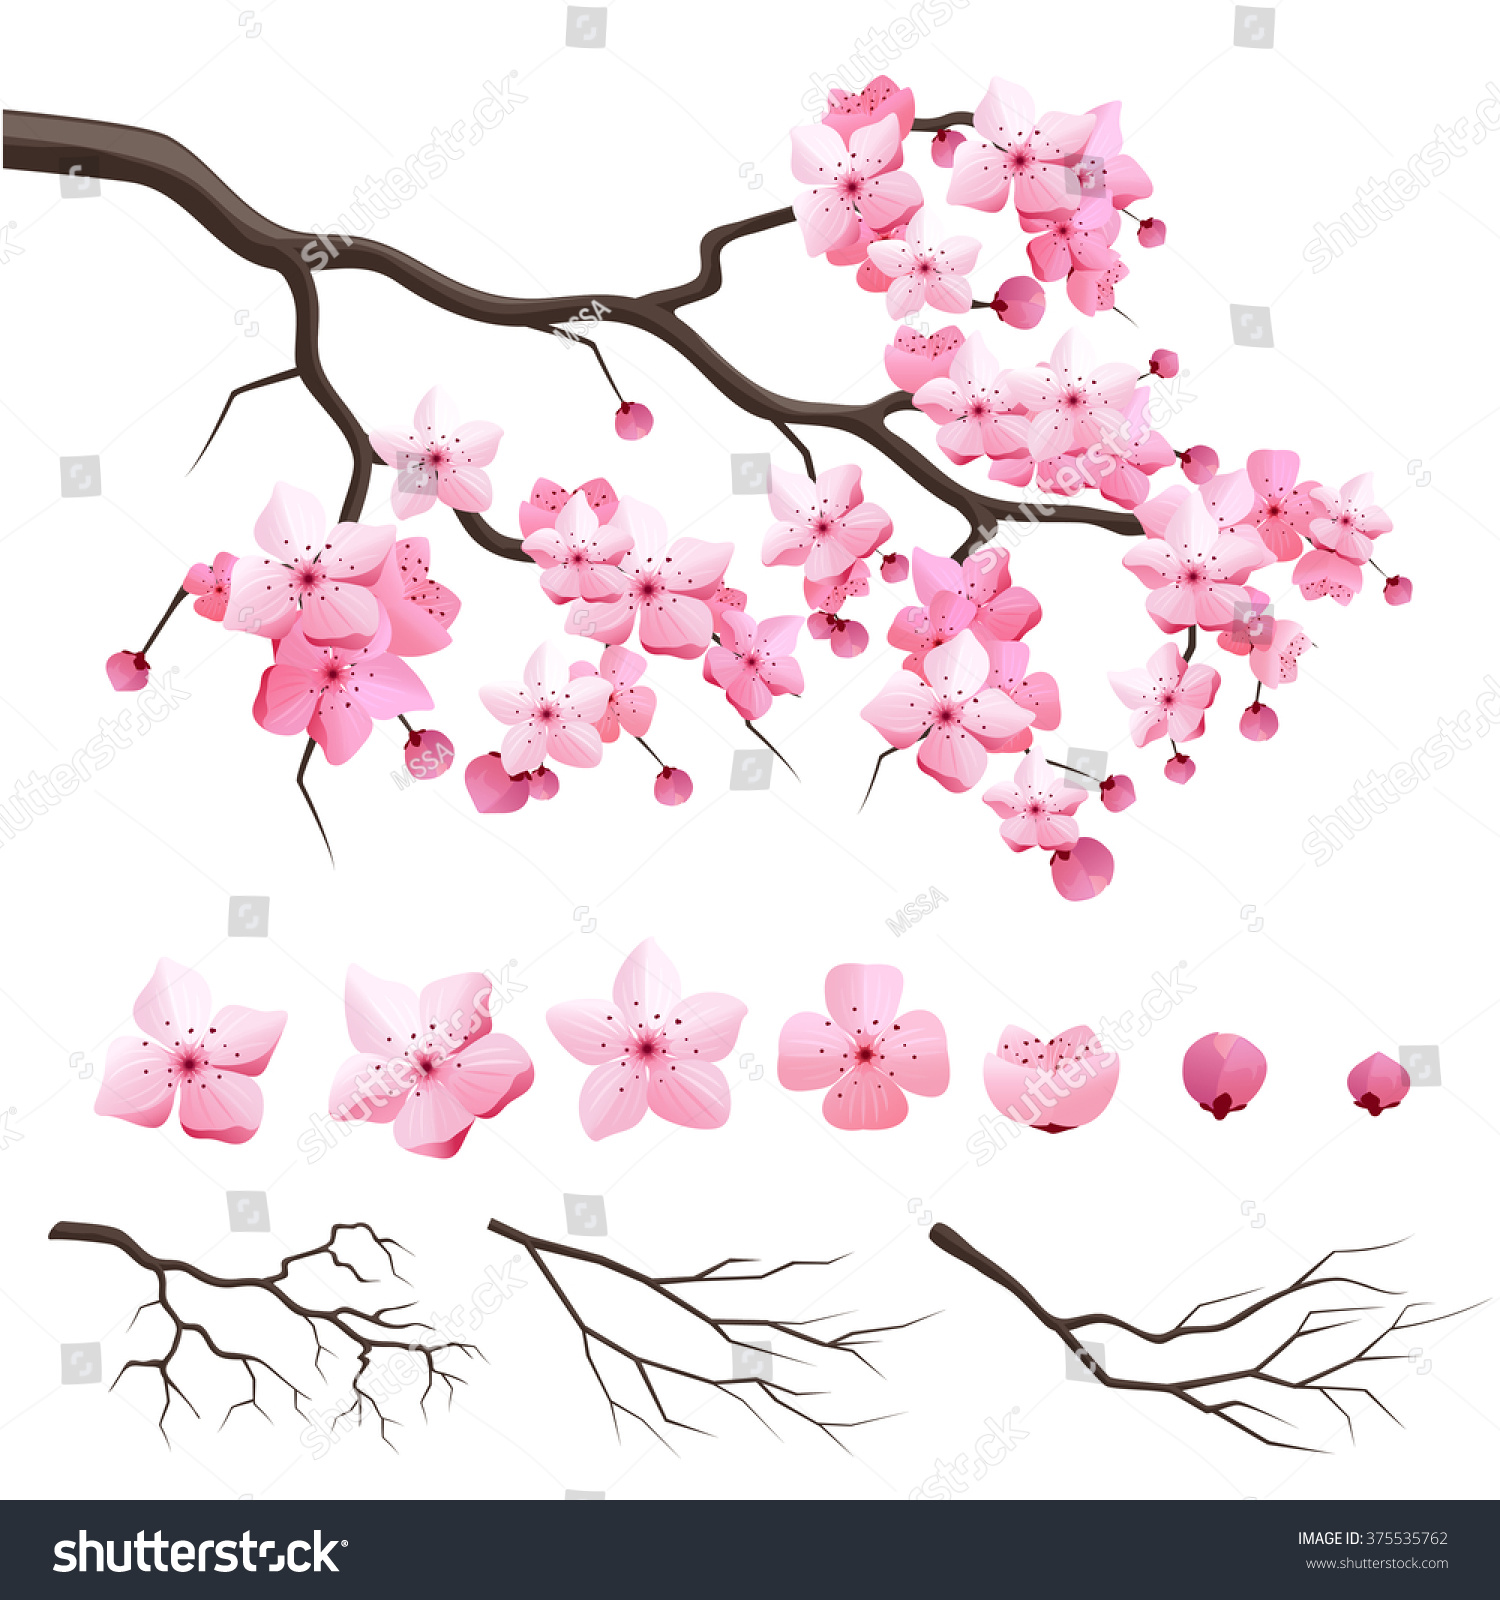 Design Japan Sakura Cherry Branch Blooming Stock Vector 375535762 ...